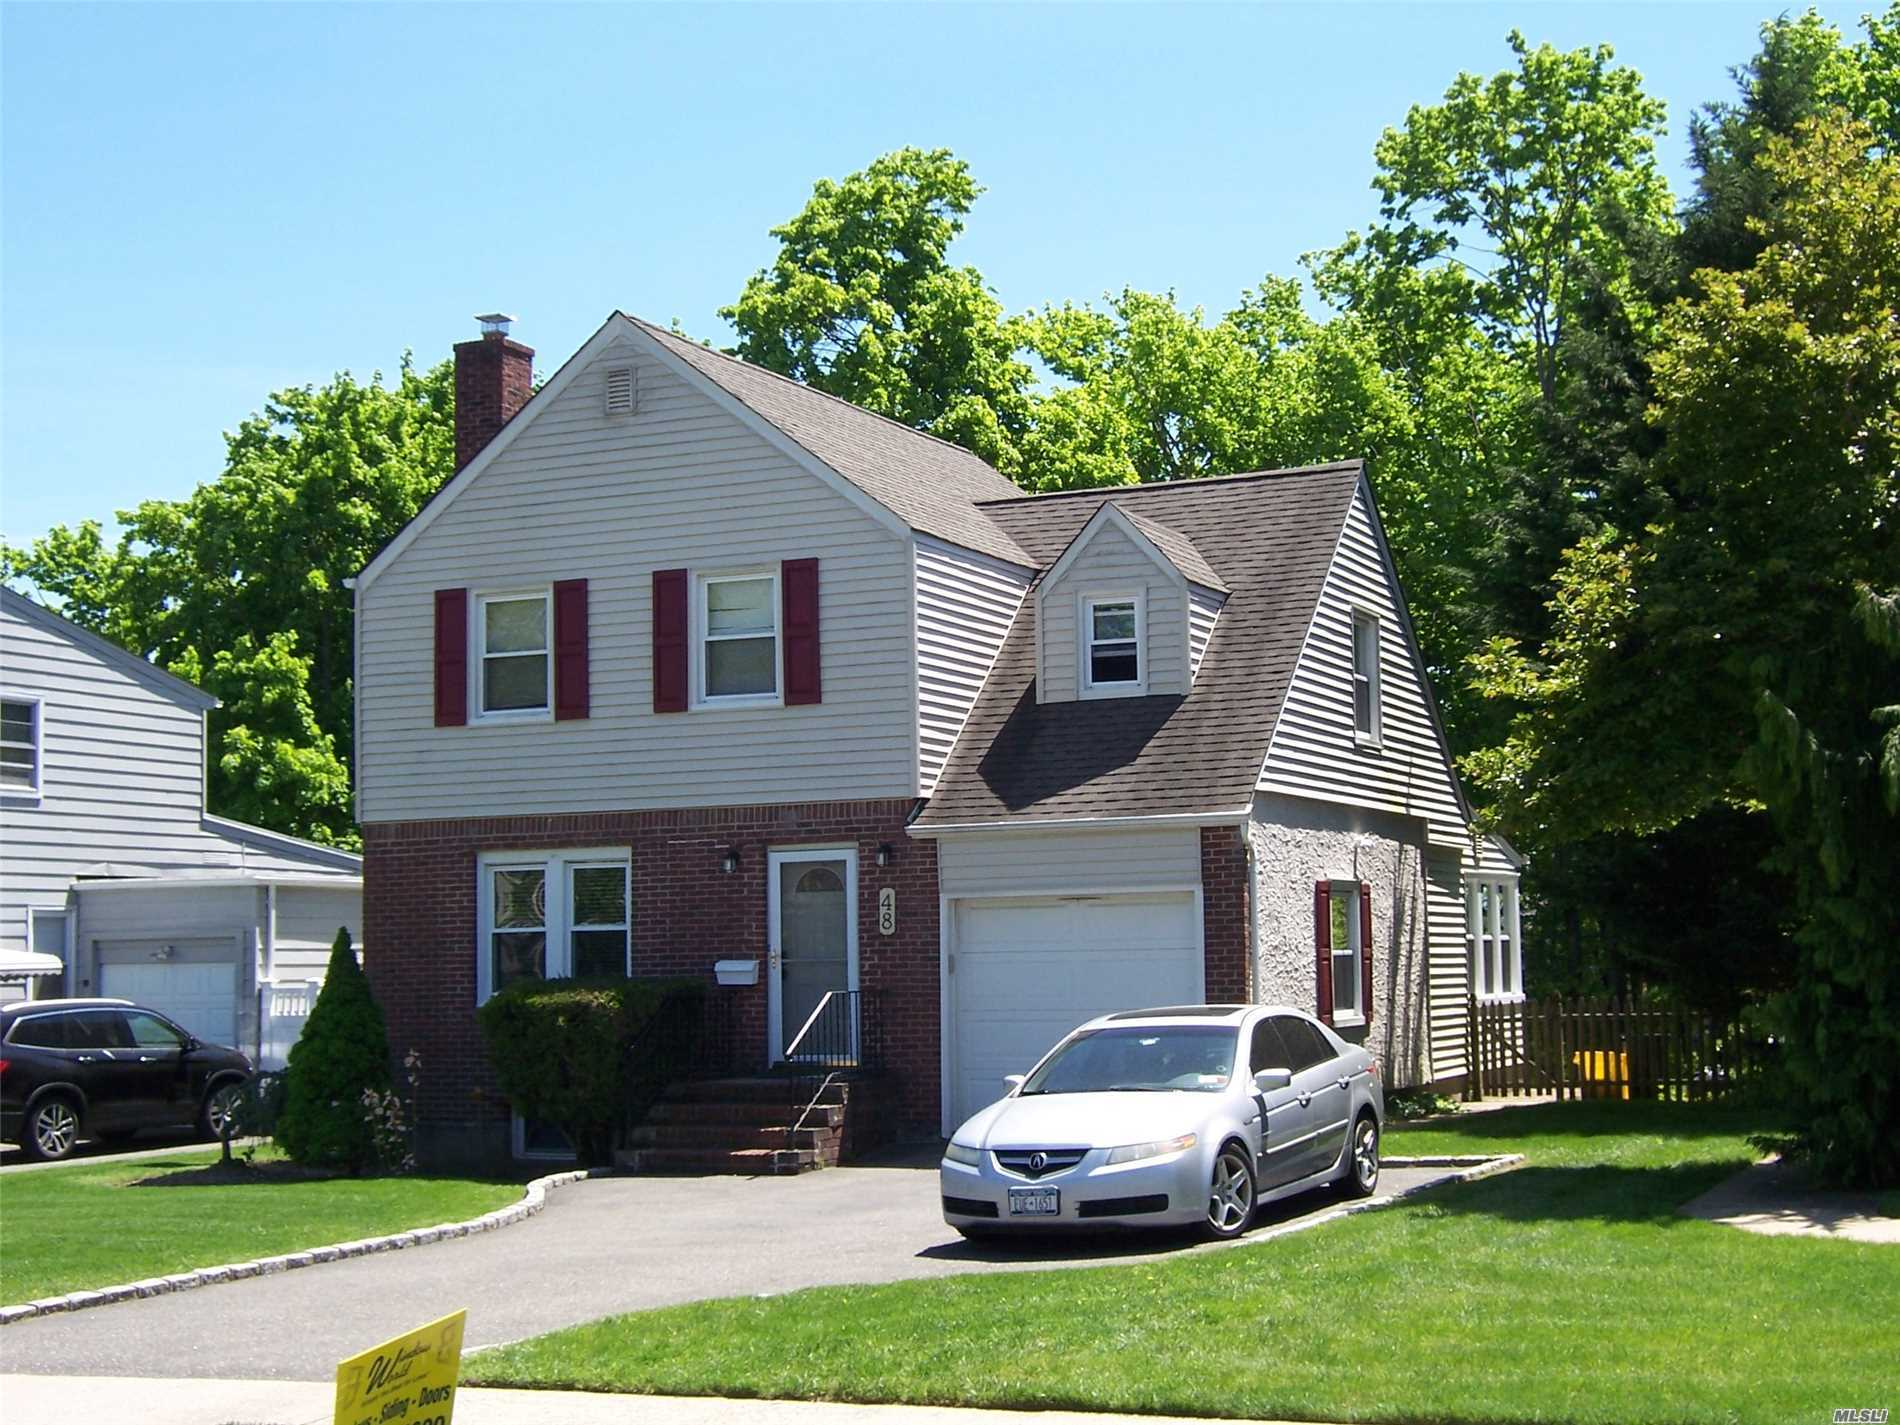 Beautiful Lenox Hills. Updated & Extended Colonial. Lg. Park like Property. New EIK with Cherrywood Cabinets. Silestone Counter Tops. Tiled Flrs, Gas Cooking. SS Appliances, Hi-Hats, Sliding Door to Trex Deck. Brand New 2 Zone Gas Heating and New baseboard.. New 50 gal. Sep. Hot Water Heater.Refinished and Stained Hardwood Flooring Through-out. New and Updated Windows. Arch Roof. Close to Train, Golf Course, and Farmingdale Town Village and Parkways.